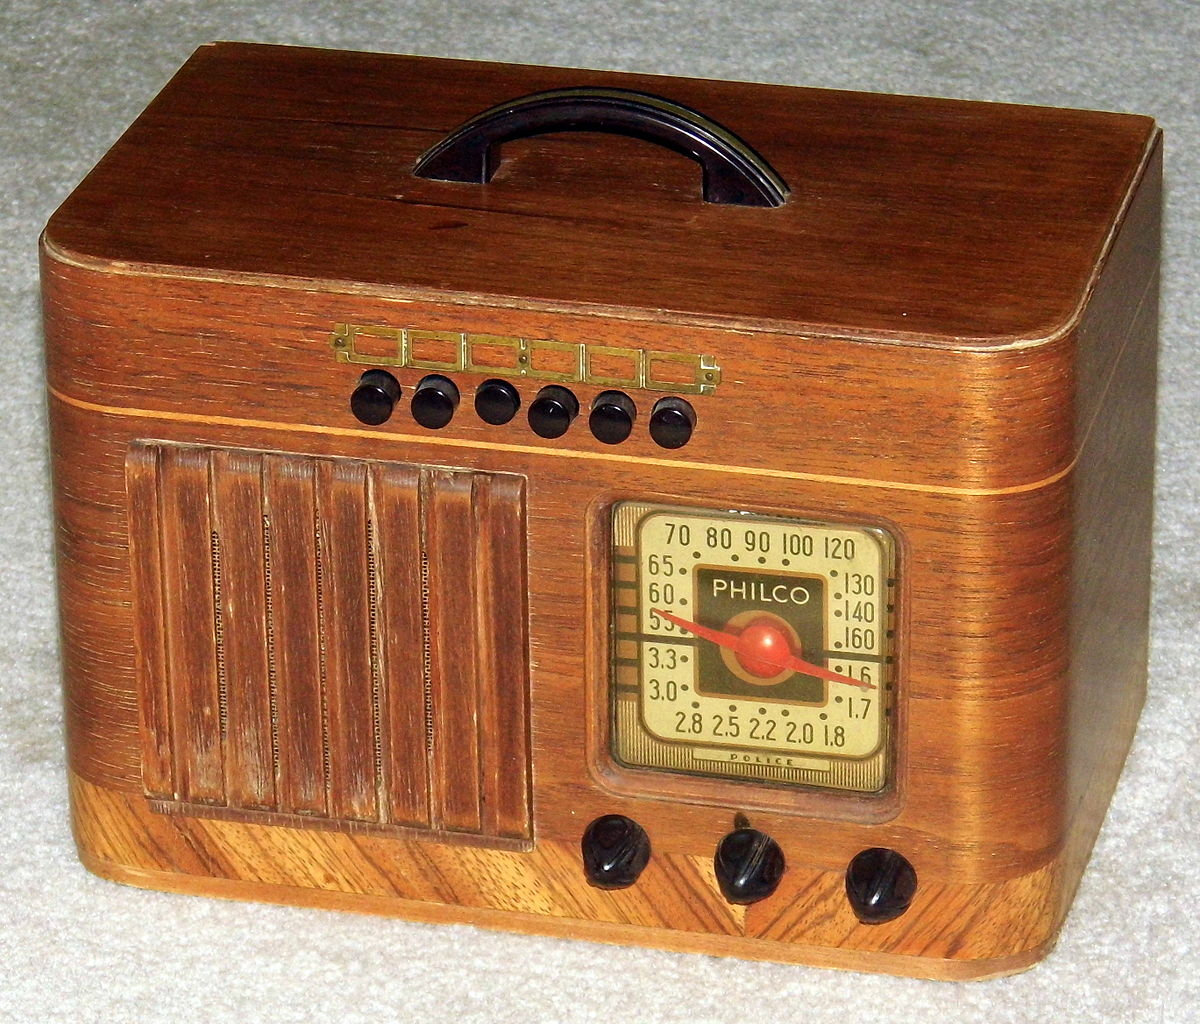 August 2014 Cpo Offers Table Jpg: File:Vintage Philco Wood Table Radio With Push Buttons